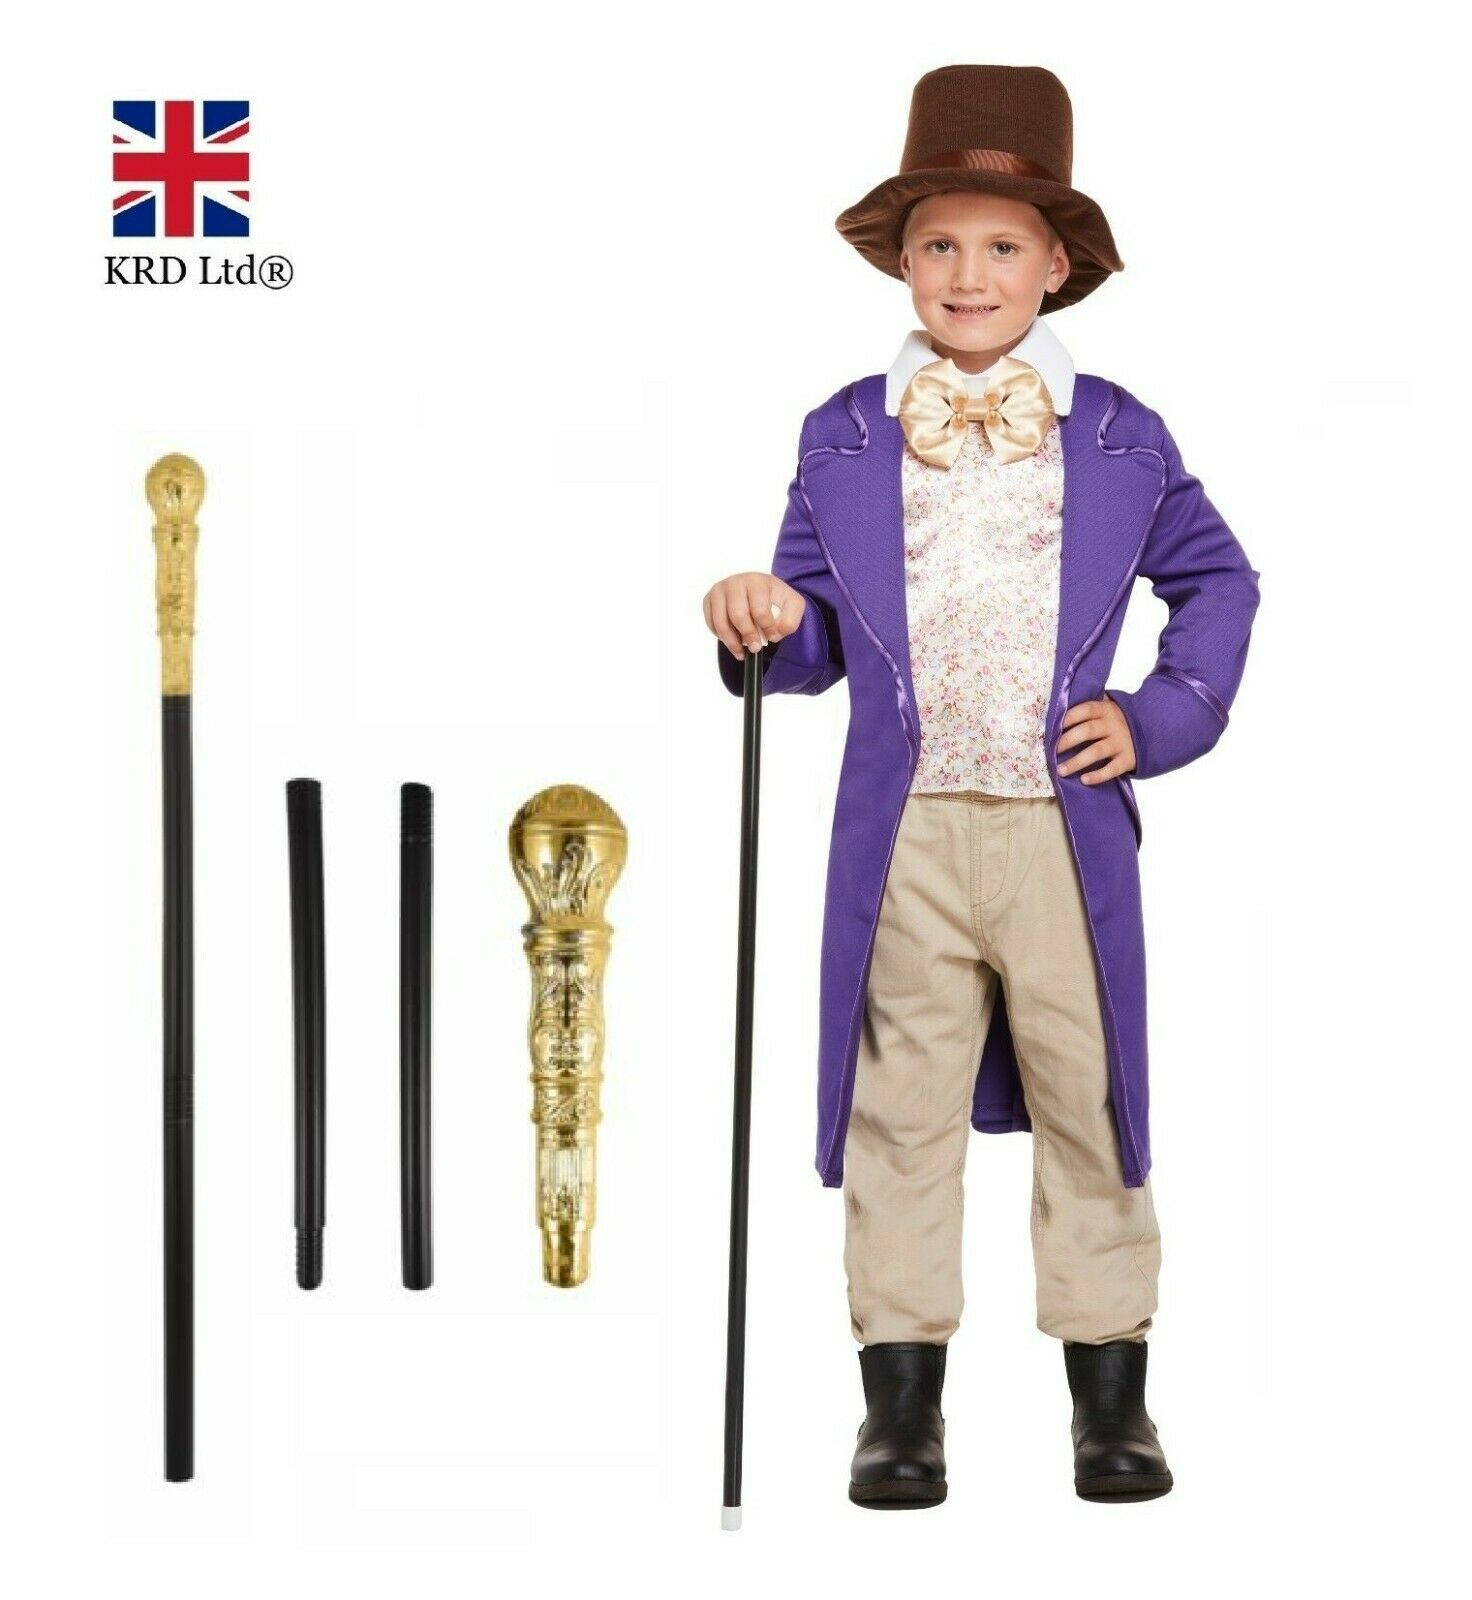 Kids WILLY WONKA COSTUME Roald Dahl Book Day Week Boys Child Fancy Dress New  UK 1 Of 3FREE Shipping See More